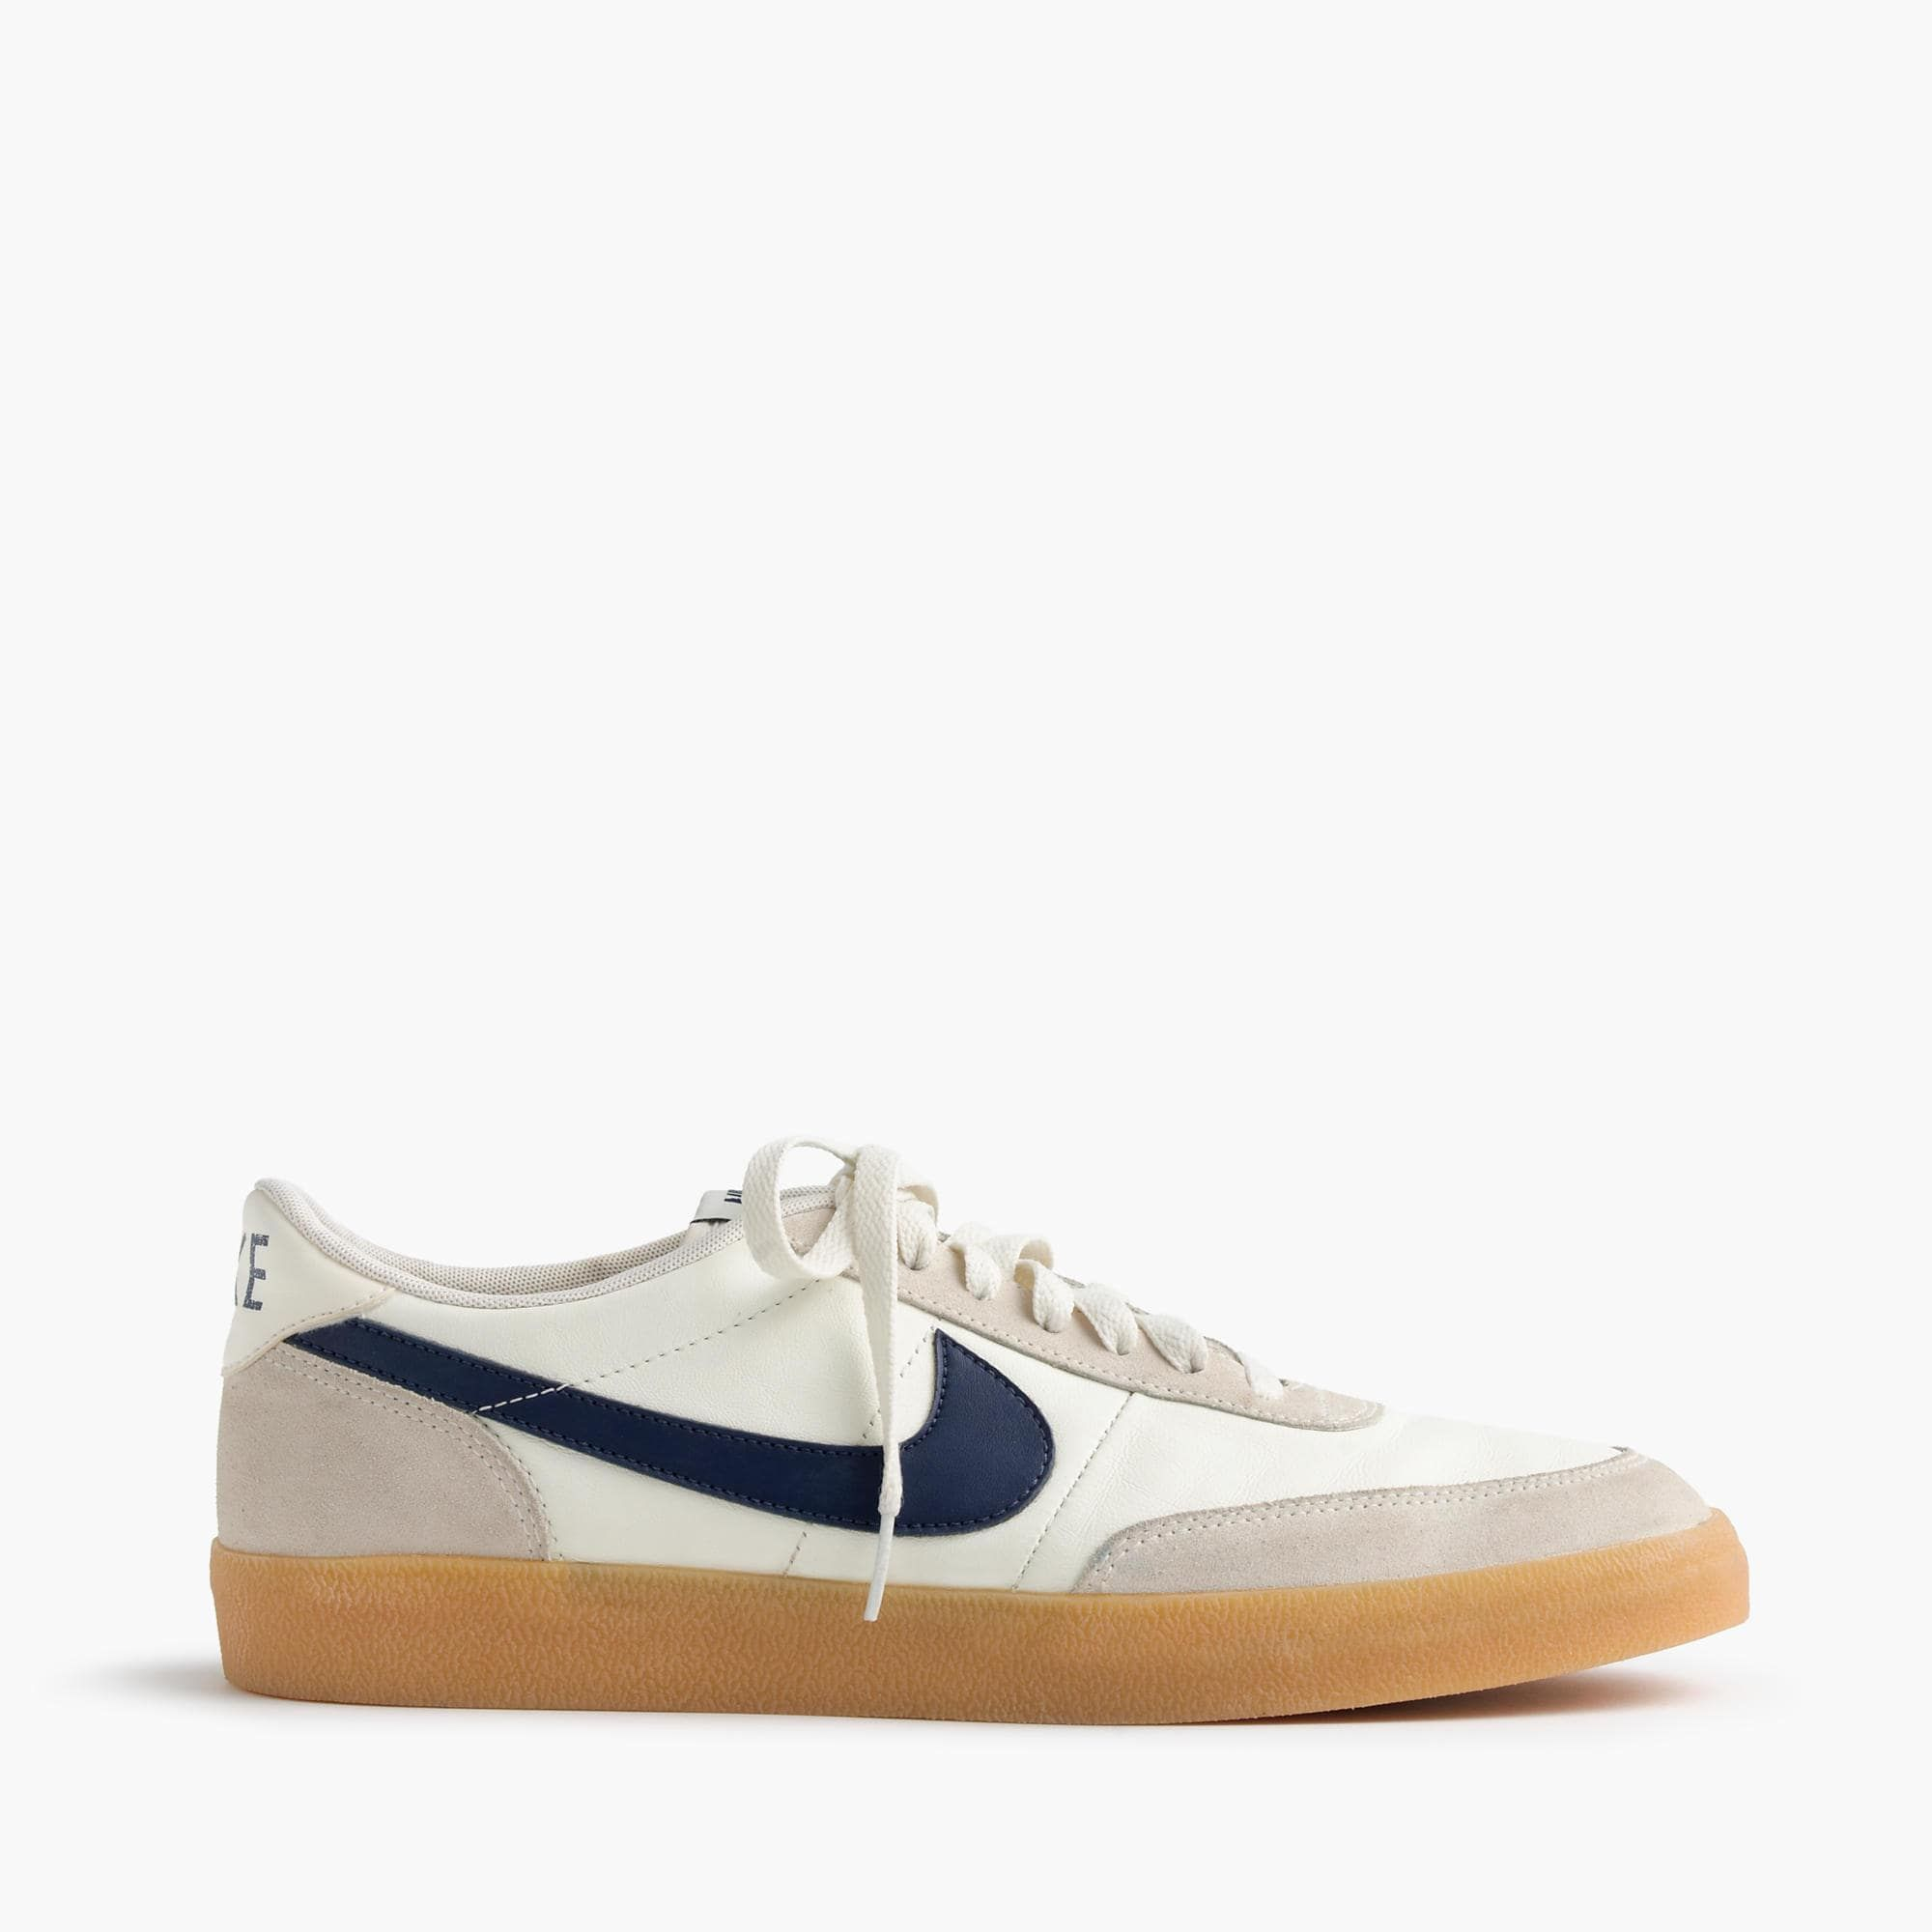 Shop the Nike For J.Crew Killshot 2 Sneakers at JCrew.com and see